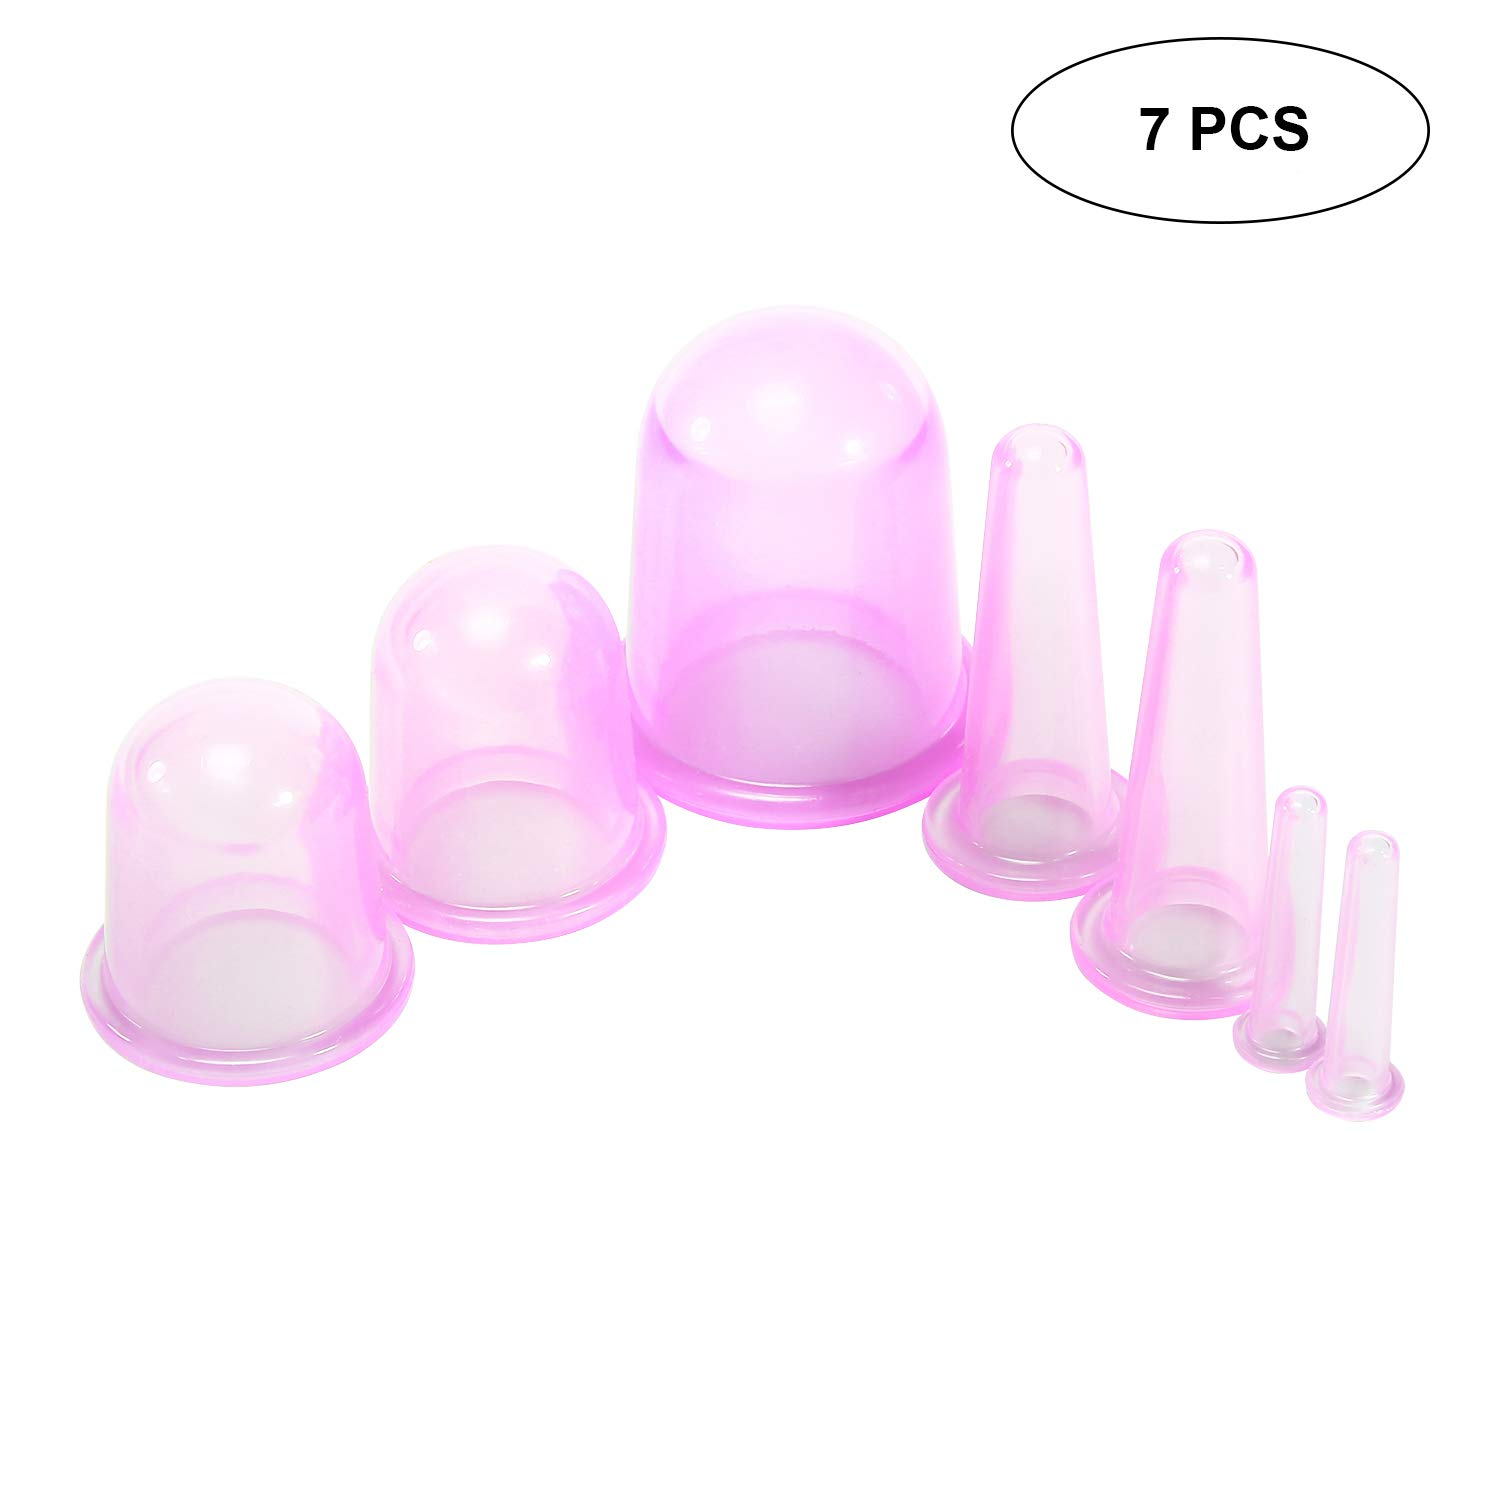 Cupping Therapy Set,AOLVO Silicone Massage Suction Anti Cellulite Cup For Body And Facial Massager Natural Pain Relief,Set Of 7